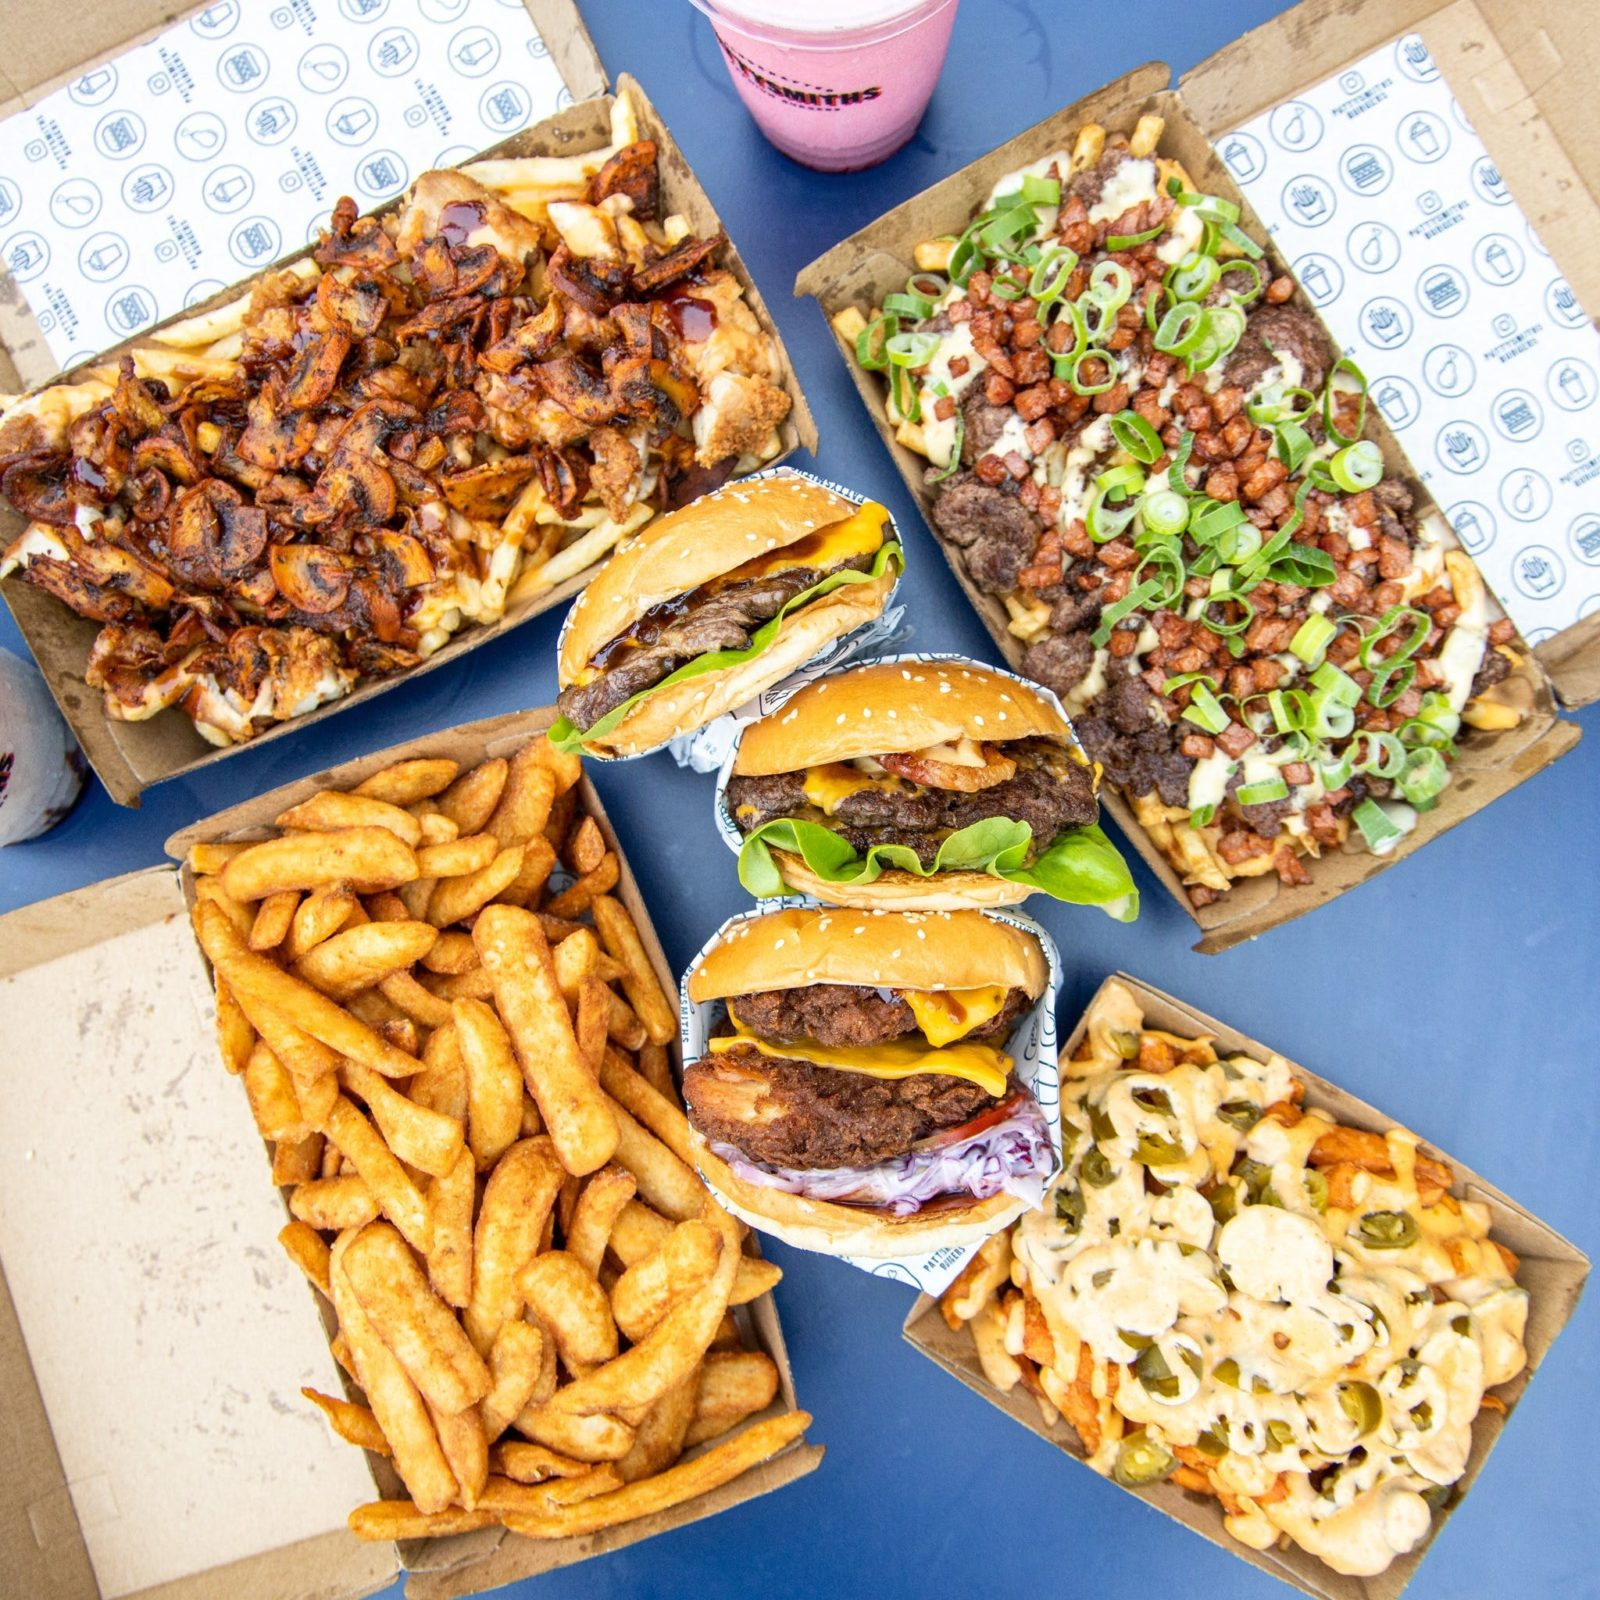 Burgers, fries and drink on a table